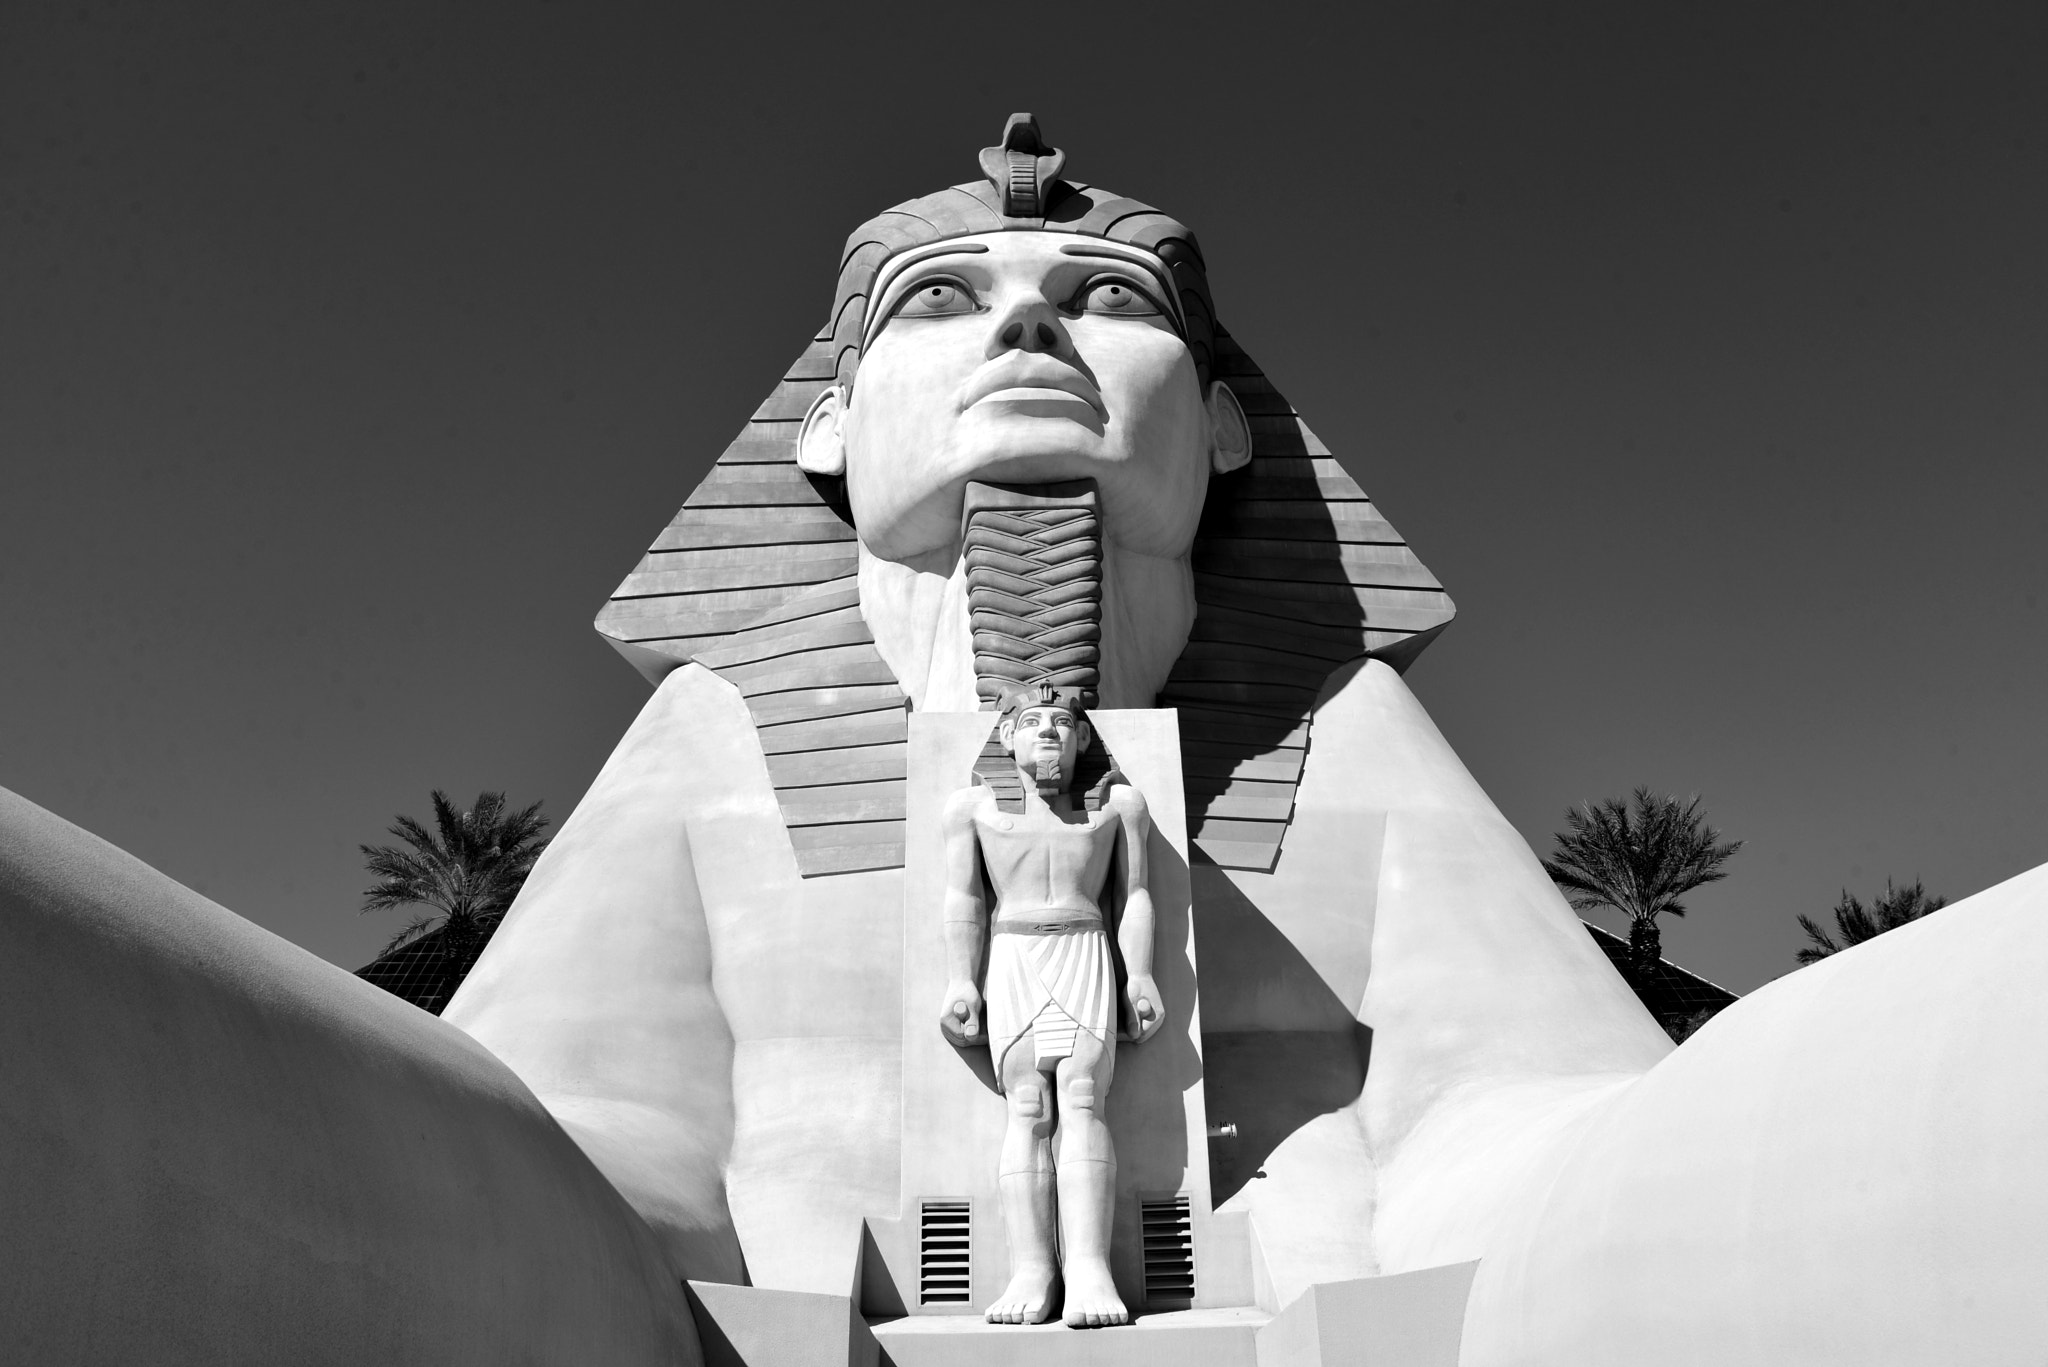 Sphinx and monument